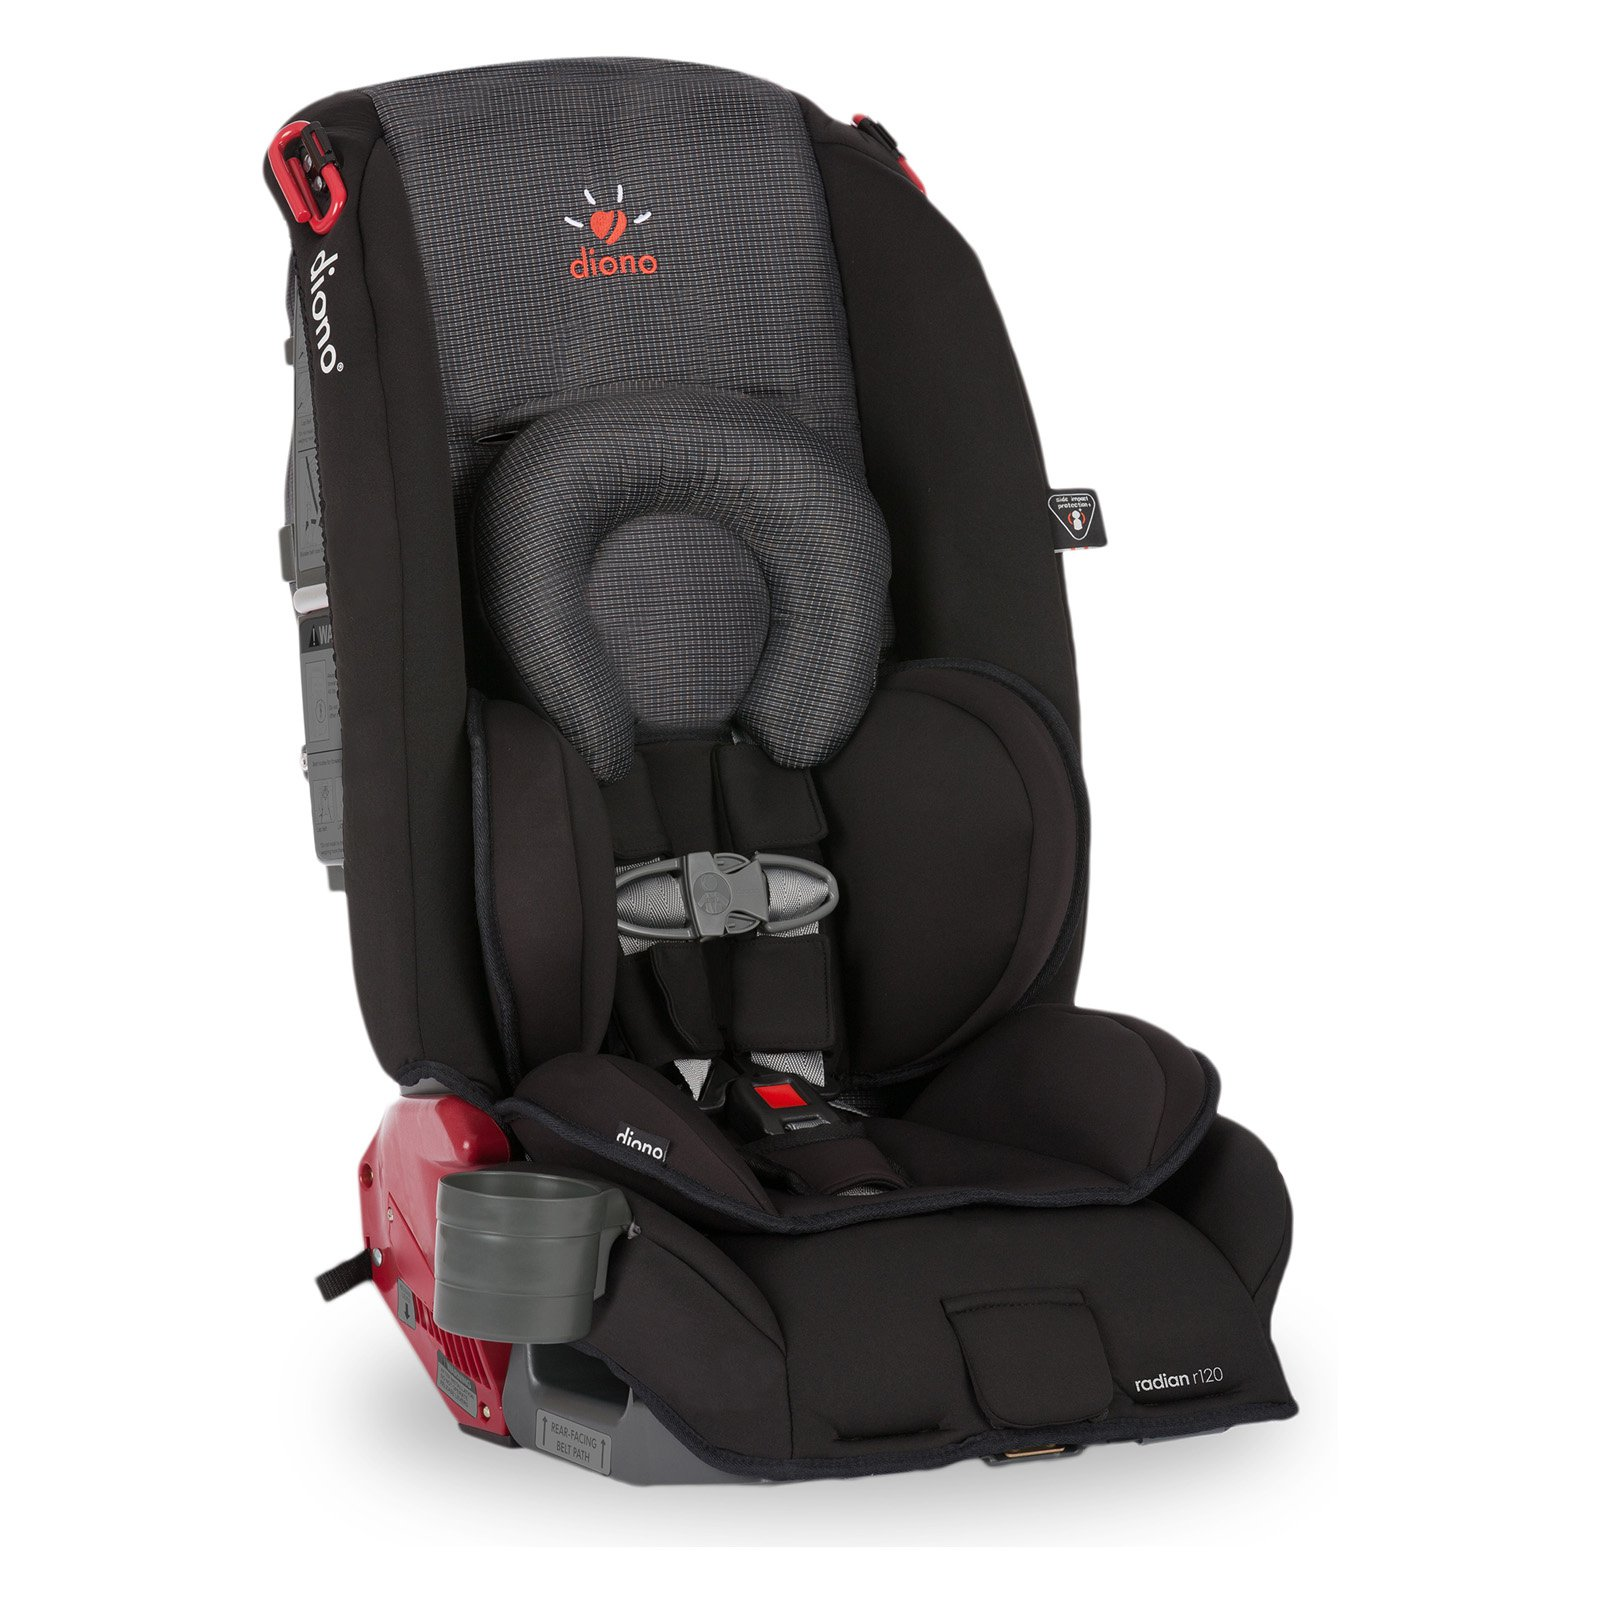 Diono Radian r120 Convertible Car Seat and Booster, Twilight